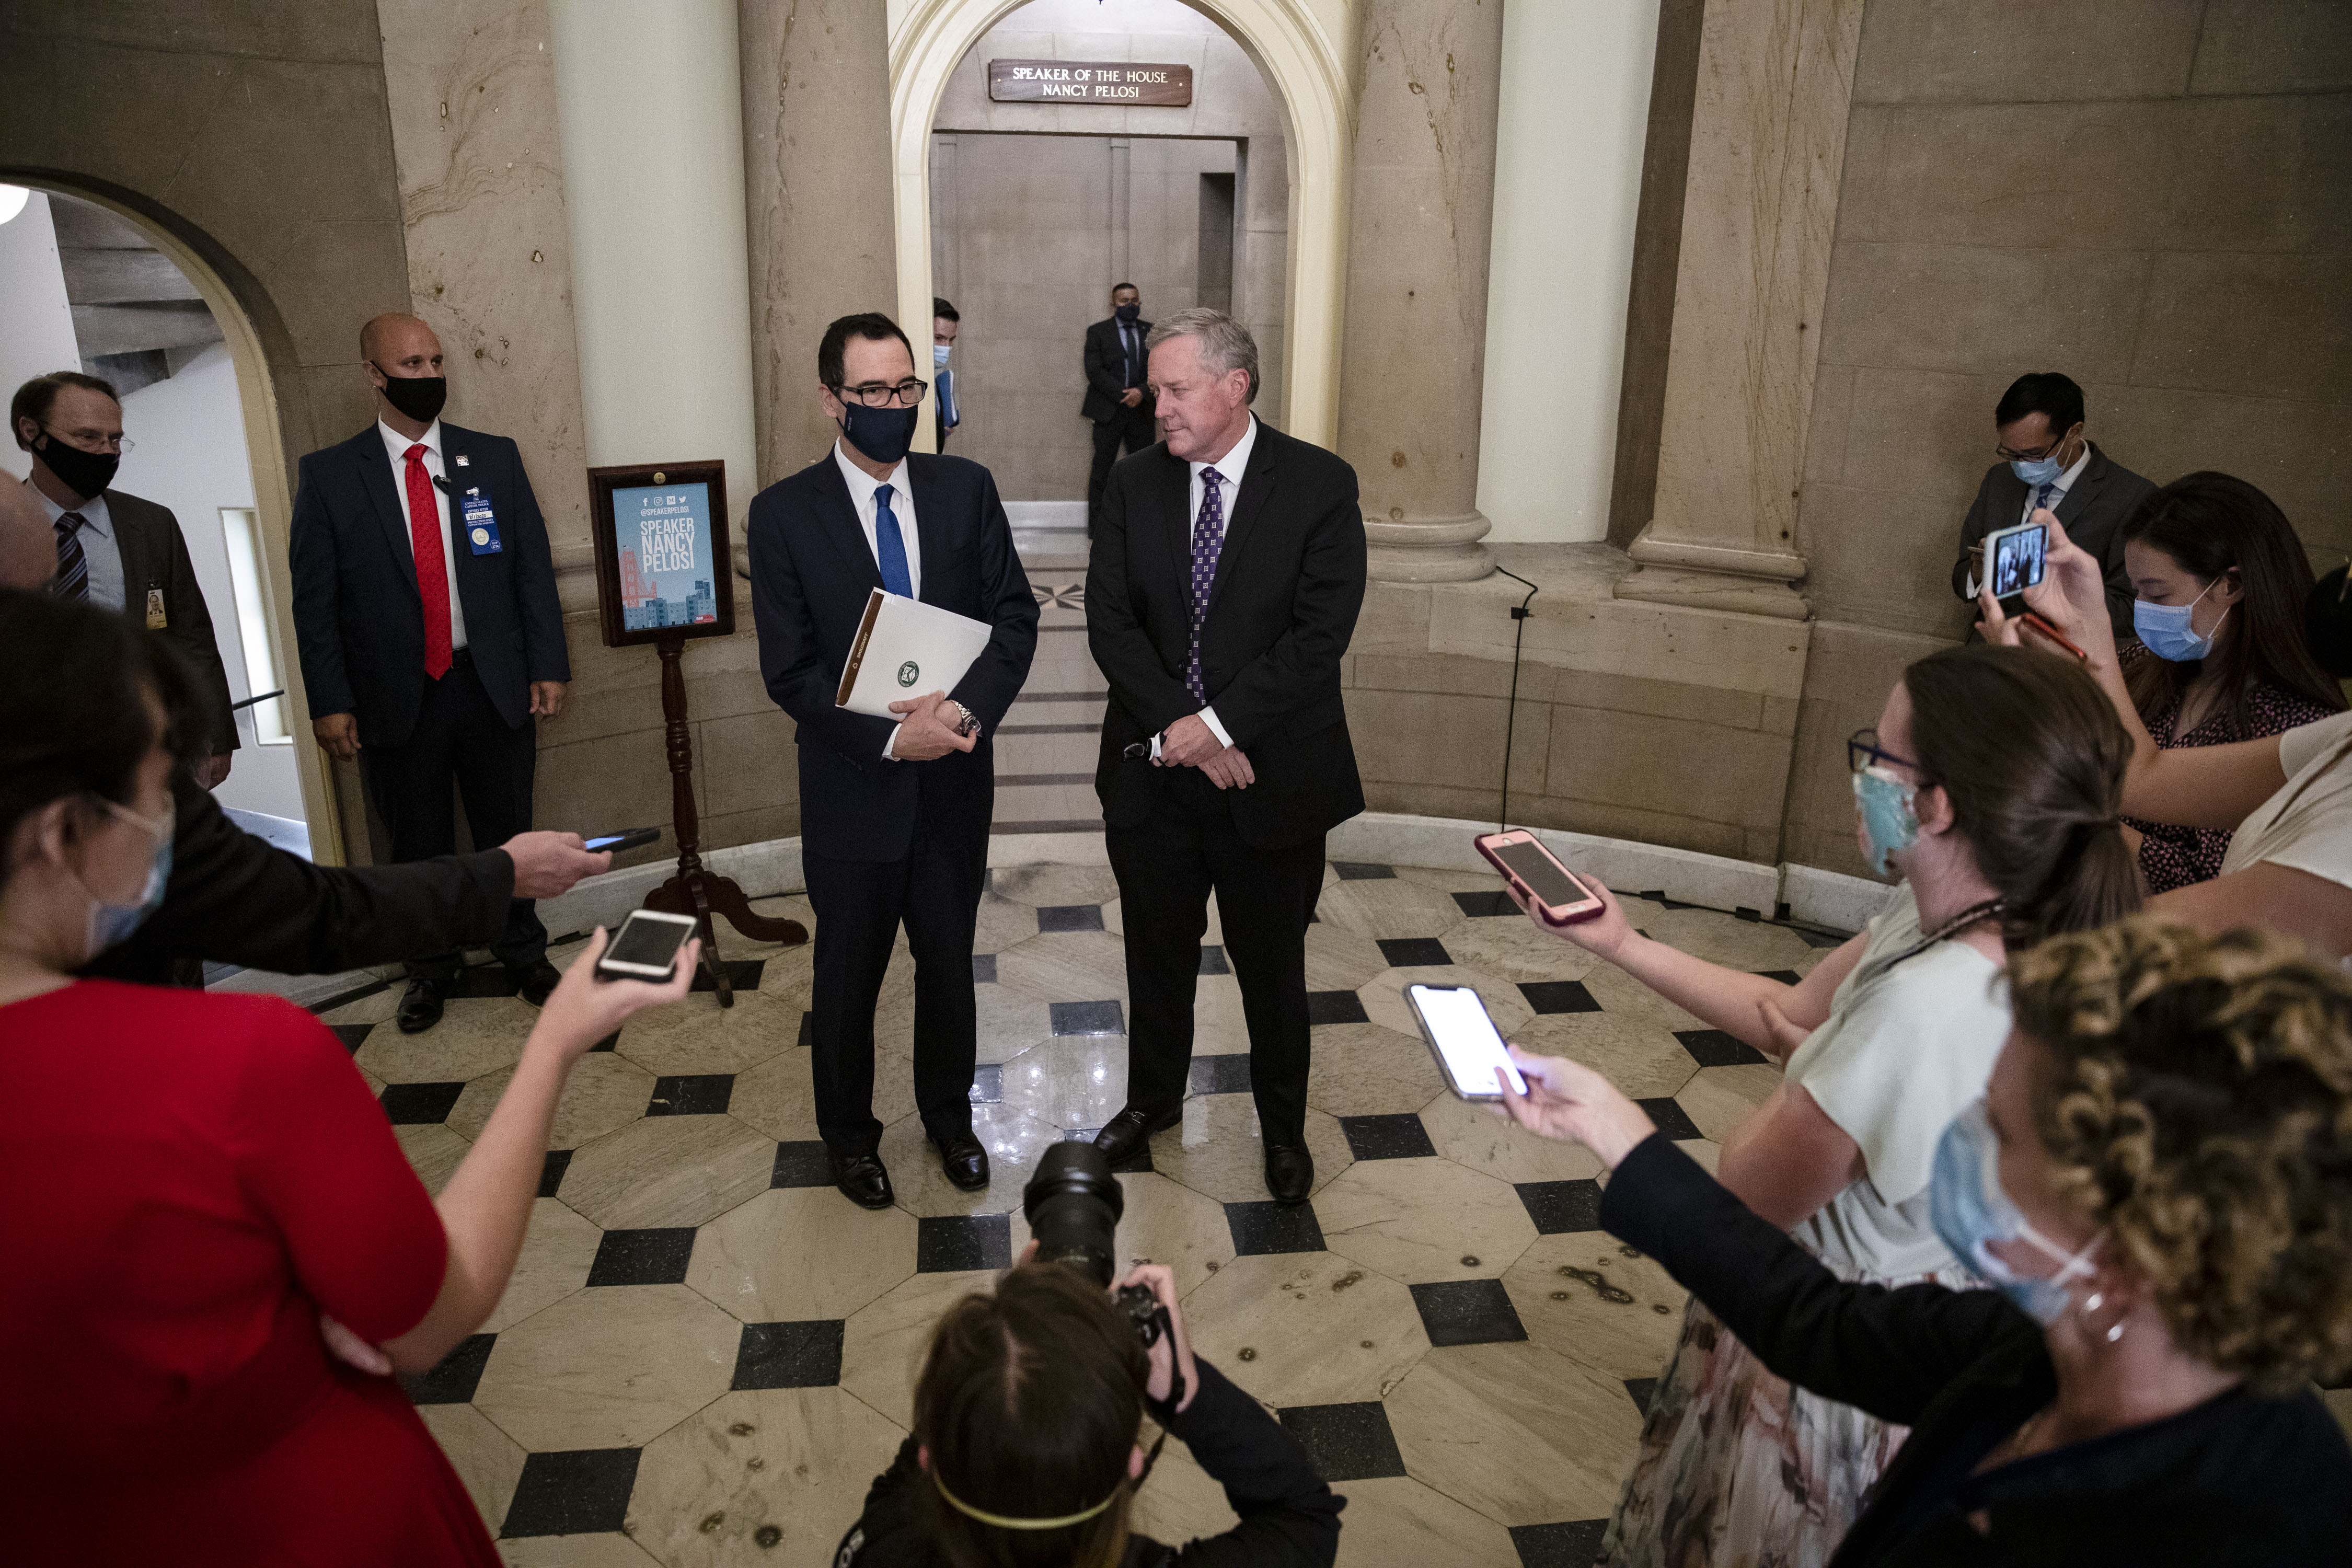 Treasury Secretary Steven Mnuchin, left, and White House chief of staff Mark Meadows speak to reporters in Washington, DC, after a meeting with House Speaker Nancy Pelosi and Senate Minority Leader Chuck Schumer on July 30.